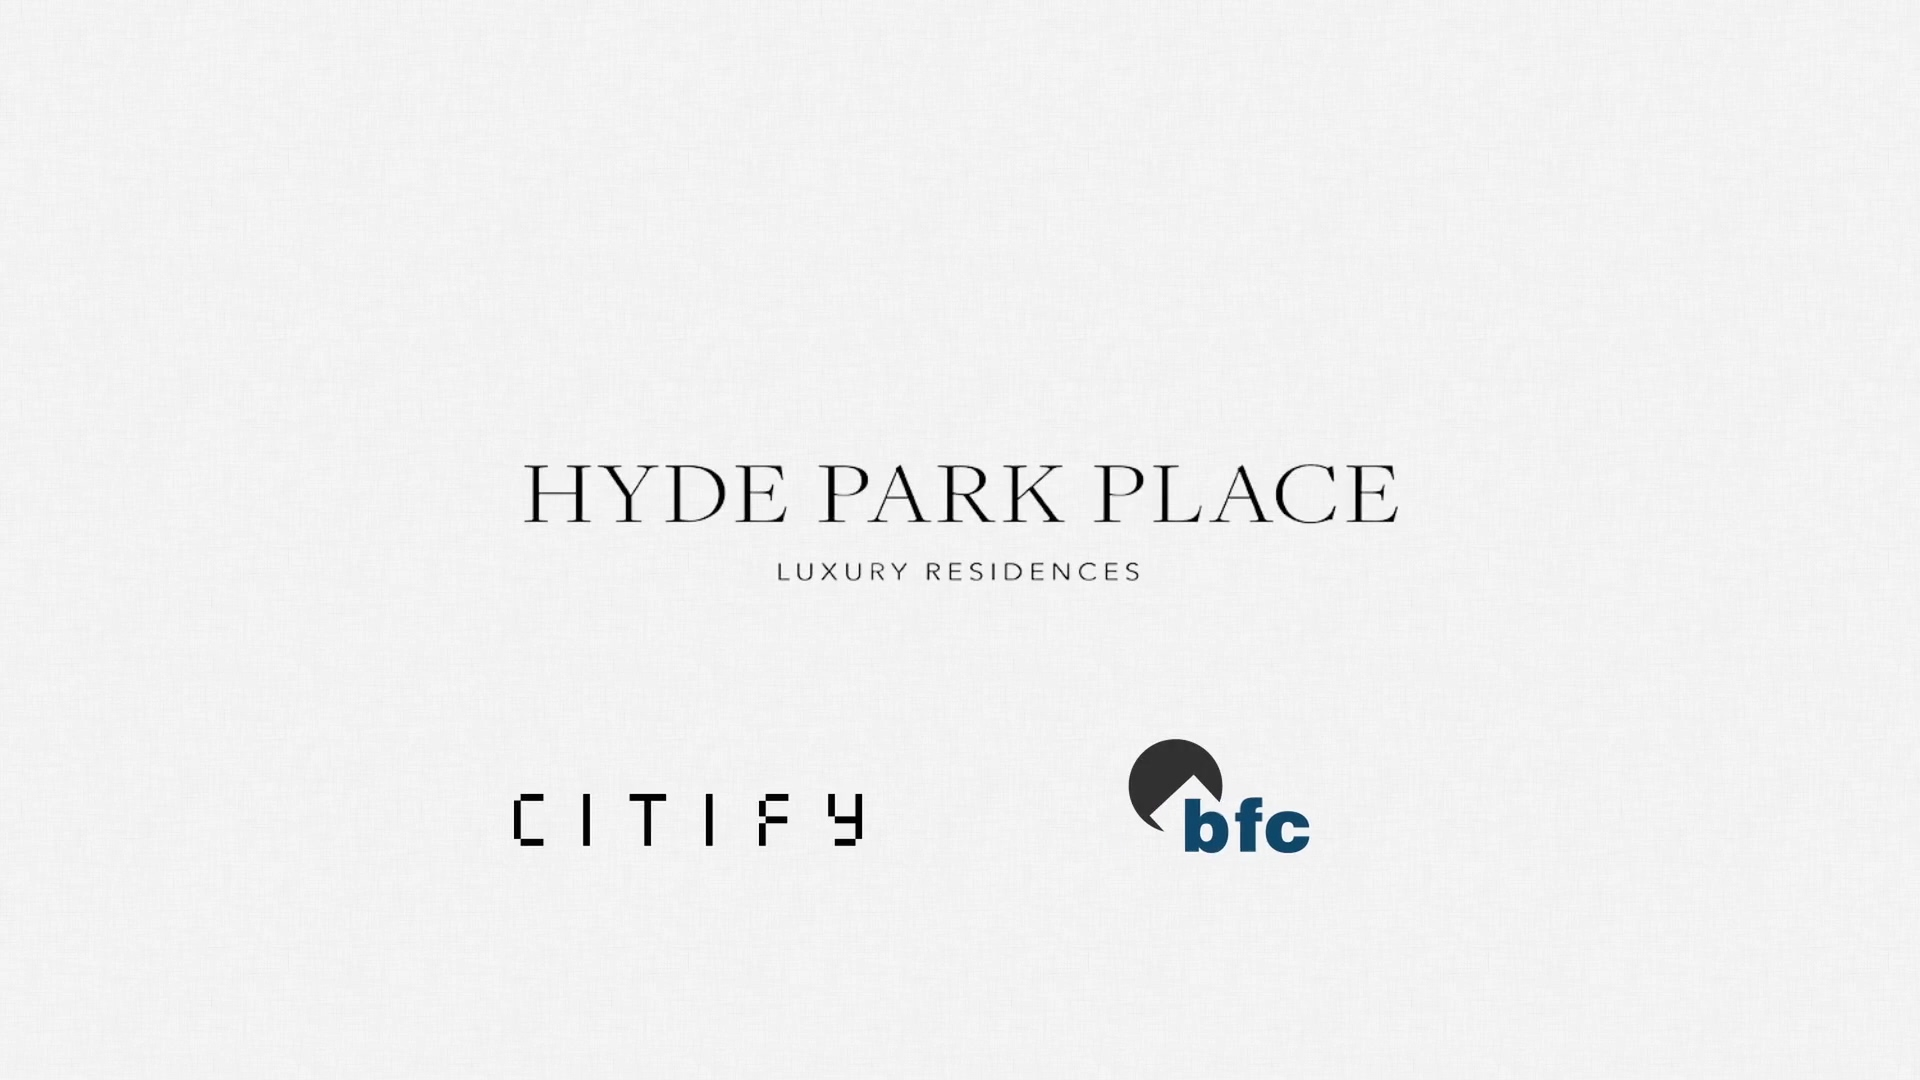 Citify - Hyde Park - March 2020